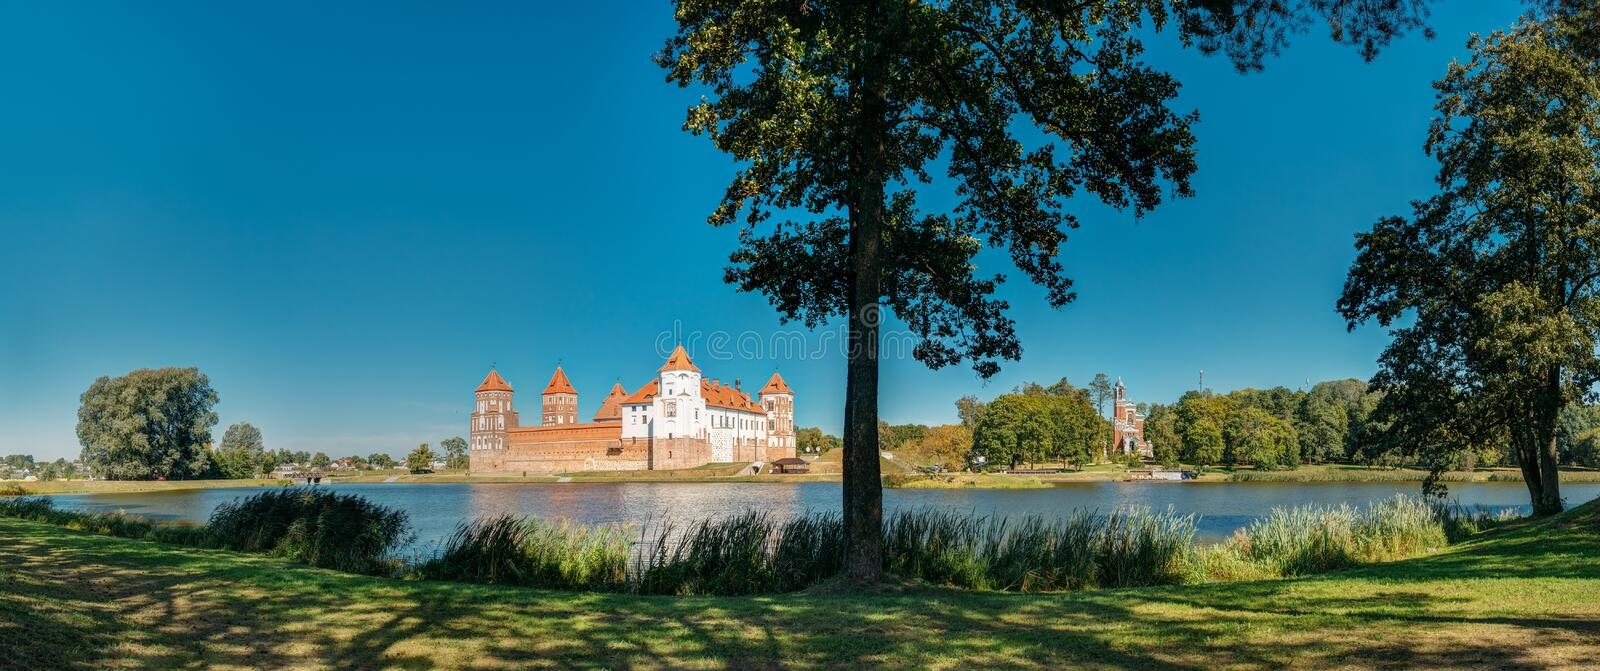 Mir Belarus. Picturesque Panoramic View Of Mir Castle Complex Fr royalty free stock image